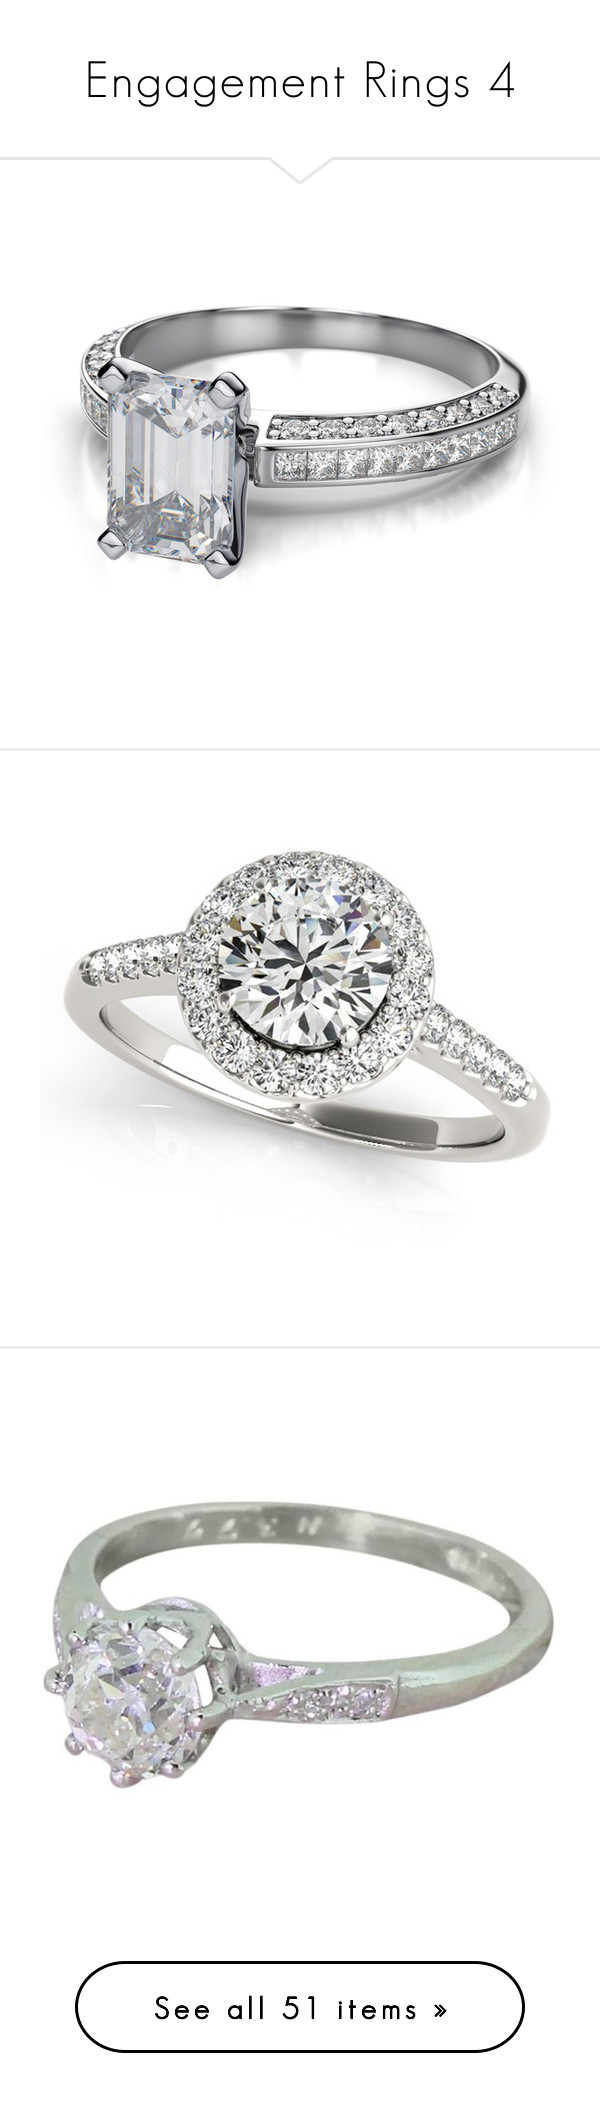 """""""Engagement Rings 4"""" by o-hugsandkisses-x ❤ liked on Polyvore featuring jewelry, rings, emerald cut engagement rings, 14 karat white gold ring, princess cut engagement rings, channel setting ring, round ring, platinum engagement rings, wedding band rings and diamond band ring"""